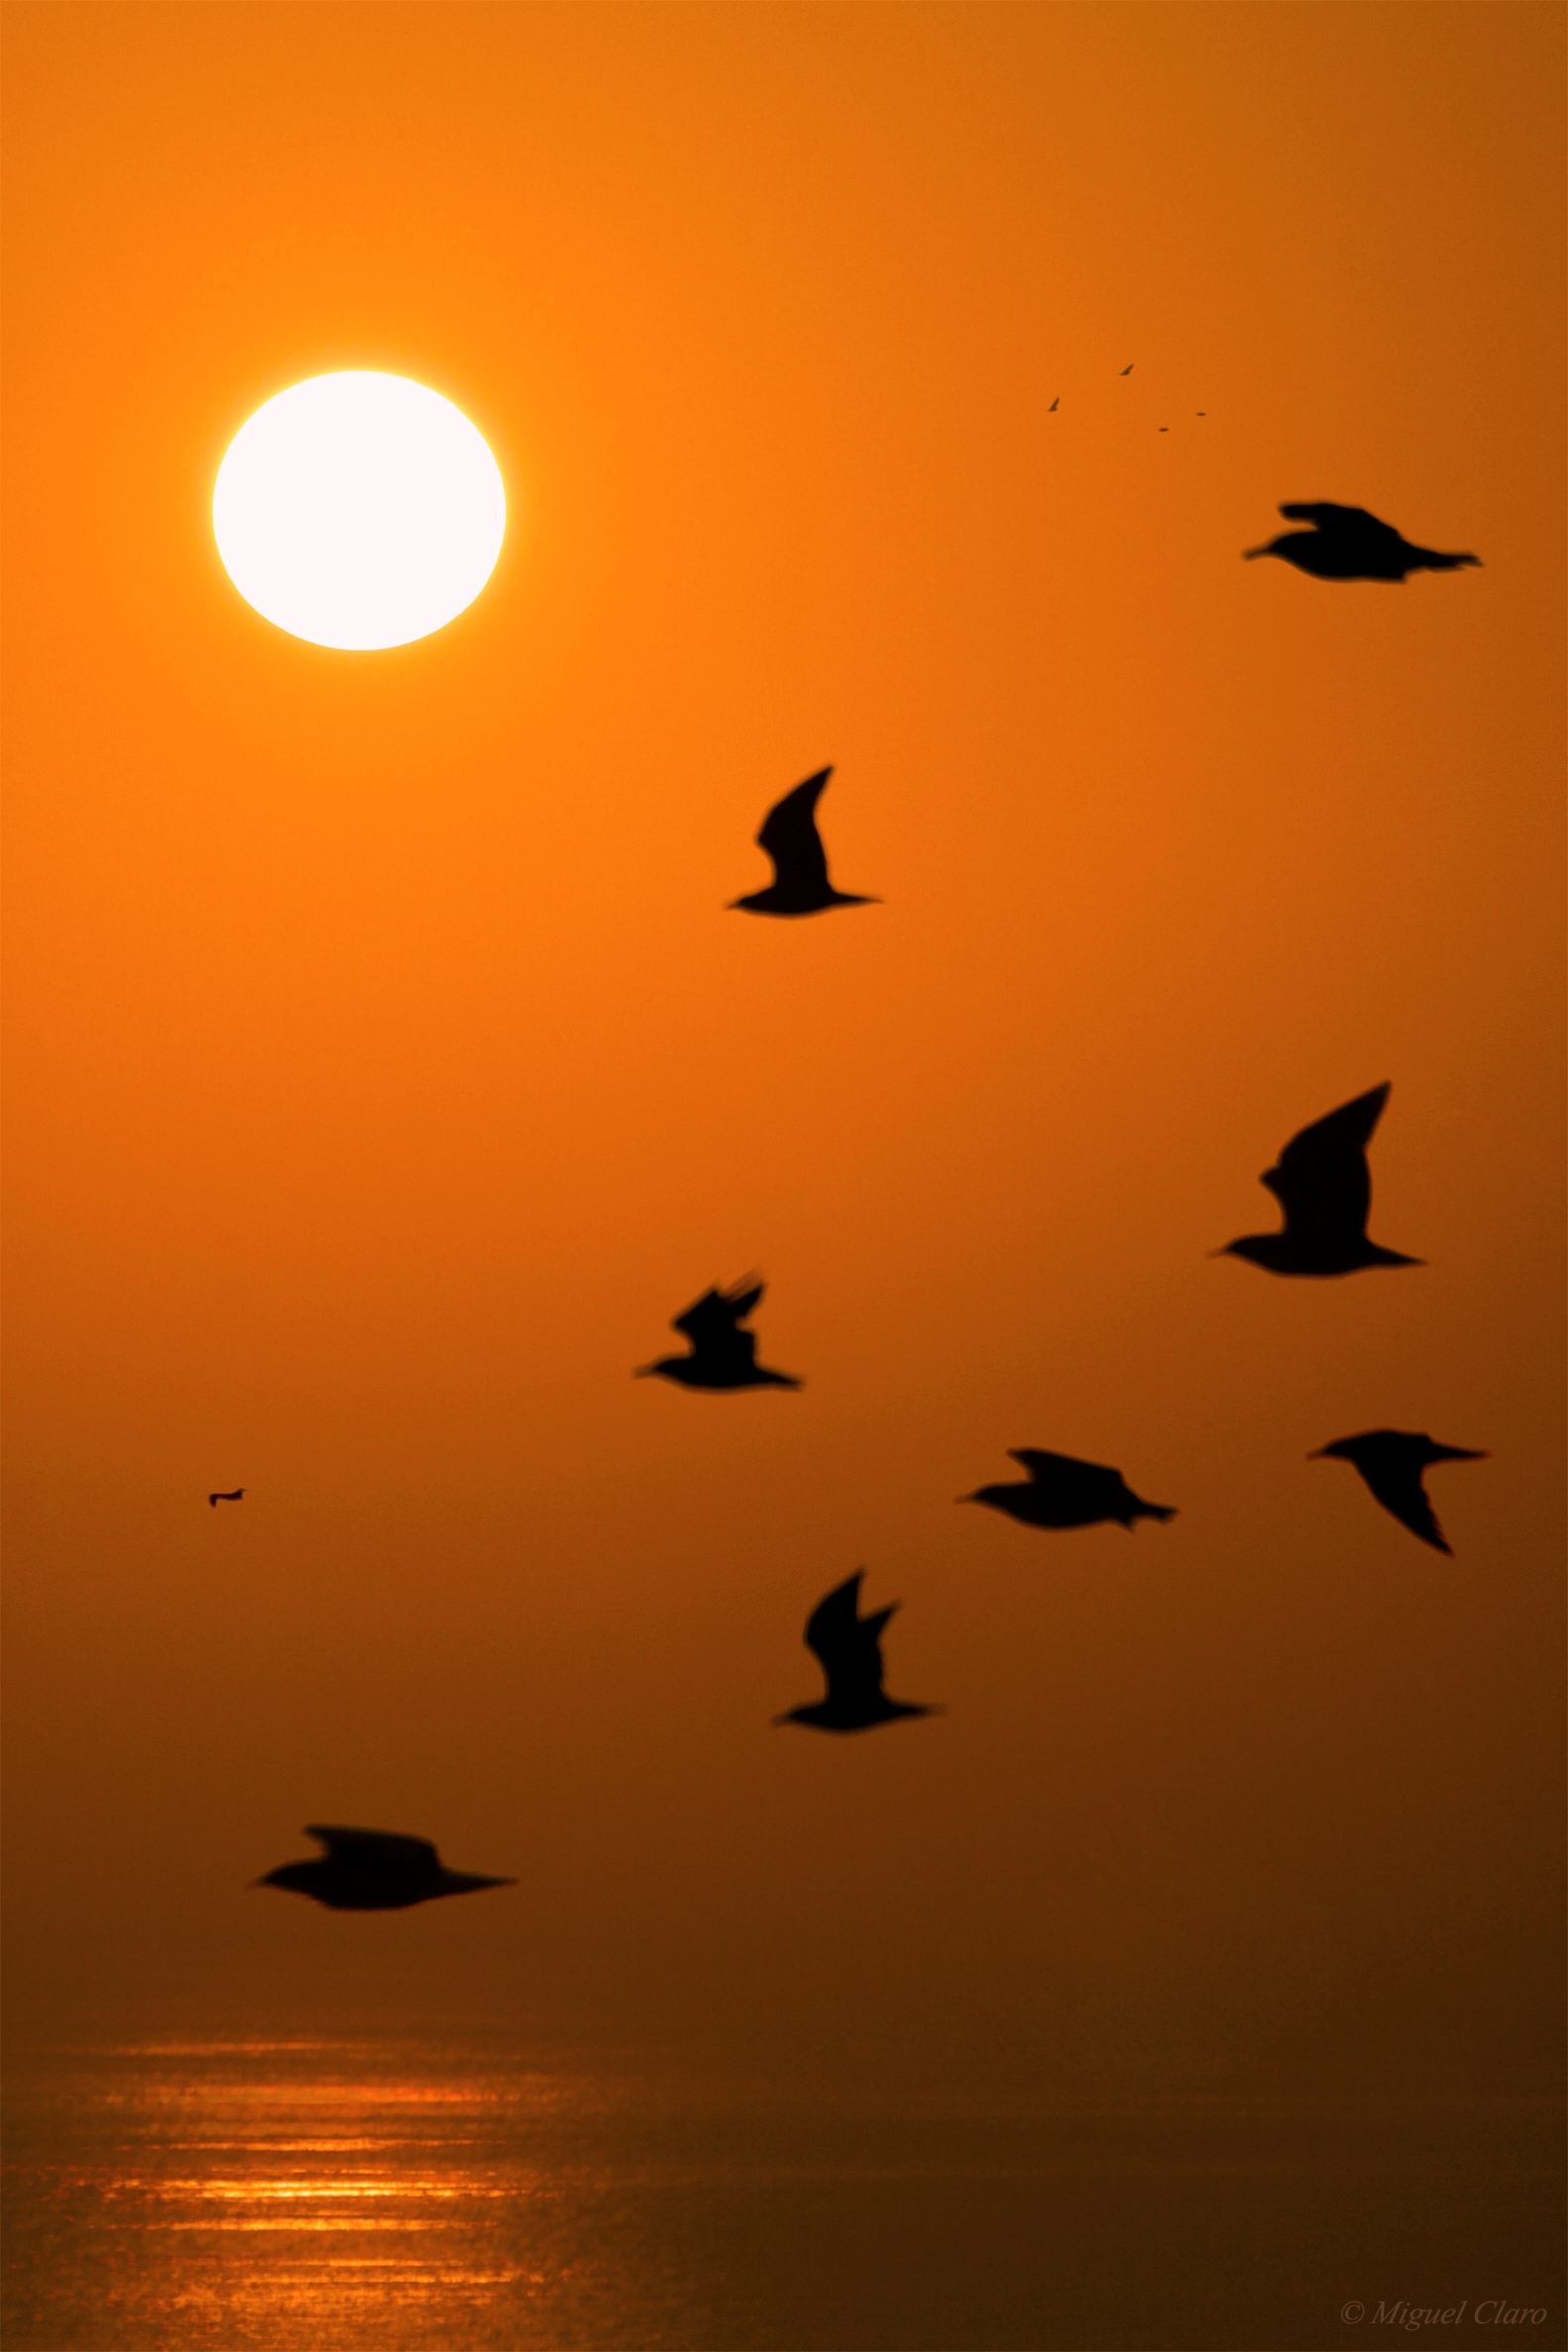 The Sunset Birds @ Astrophotography by Miguel Claro